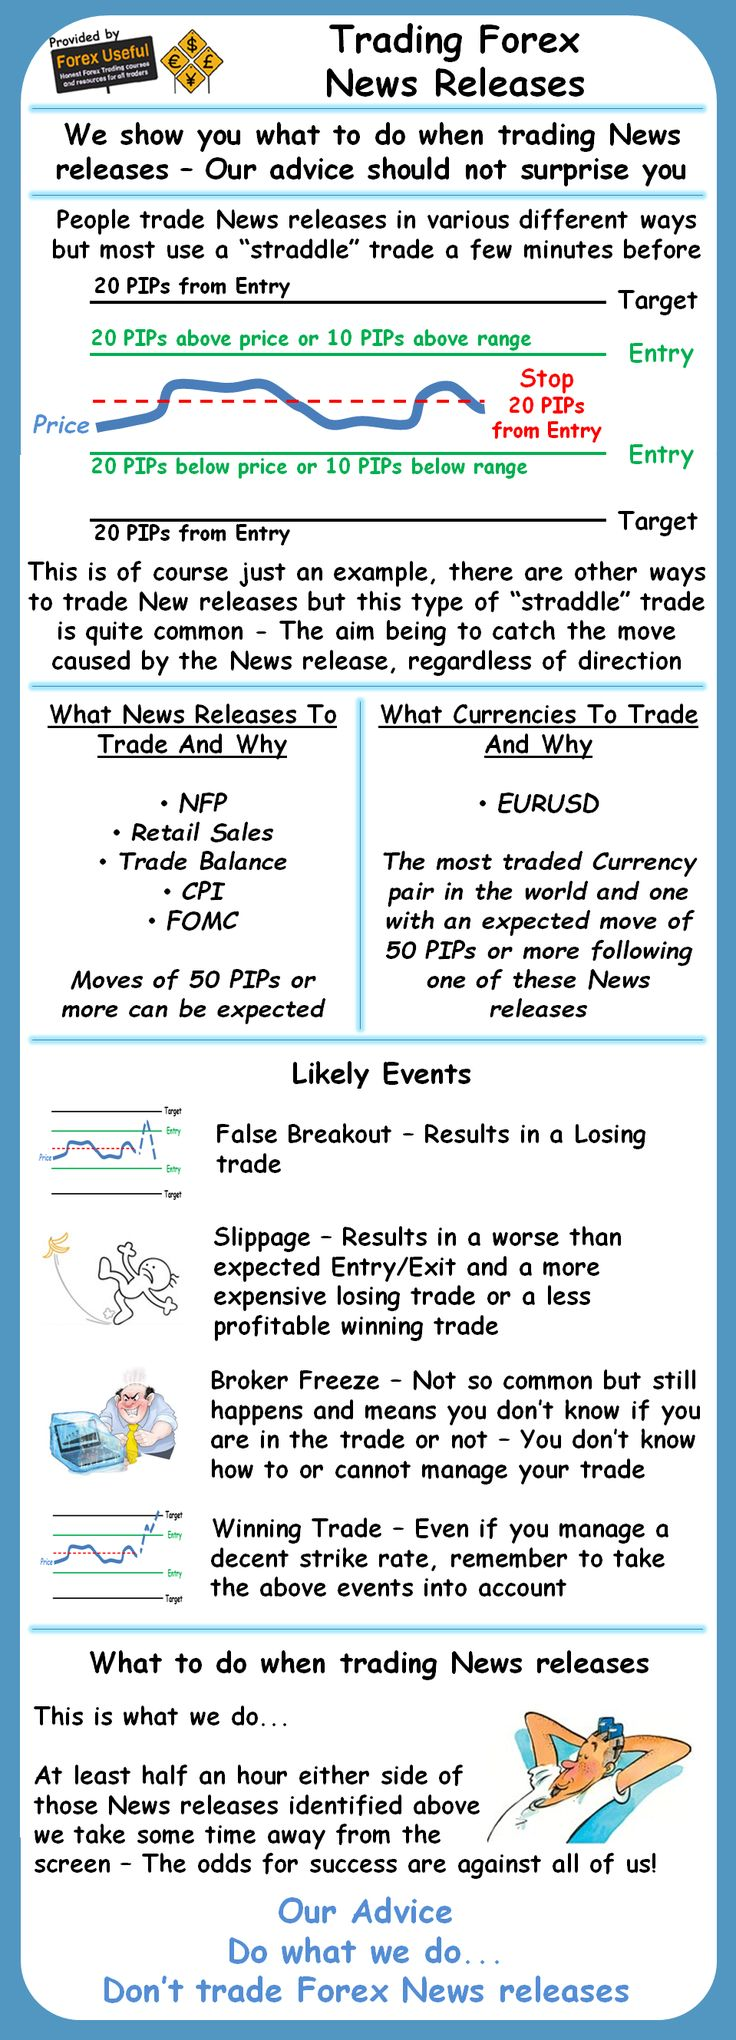 Forex trading on news releases